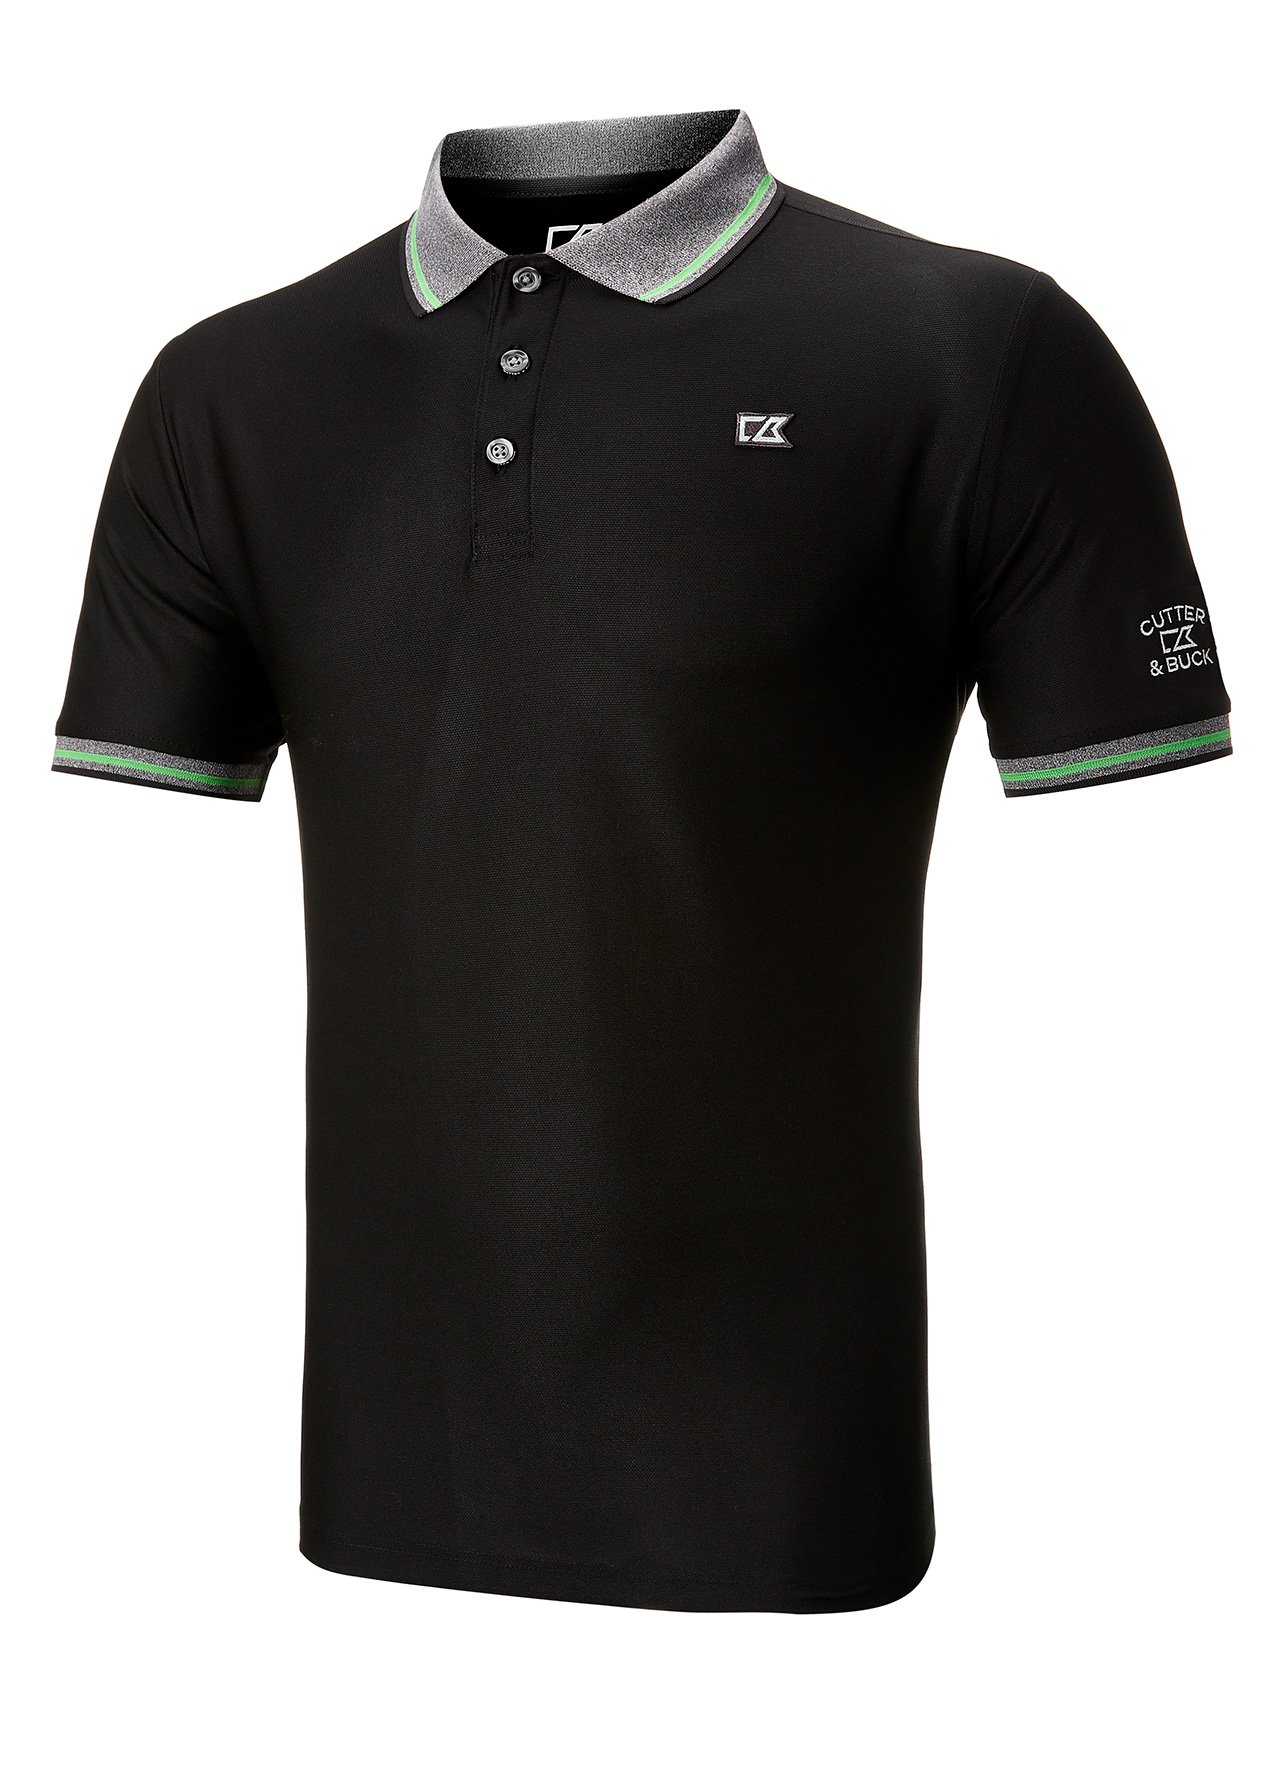 Cutter buck drytec golf polo shirt ebay for Cutter buck polo shirt size chart